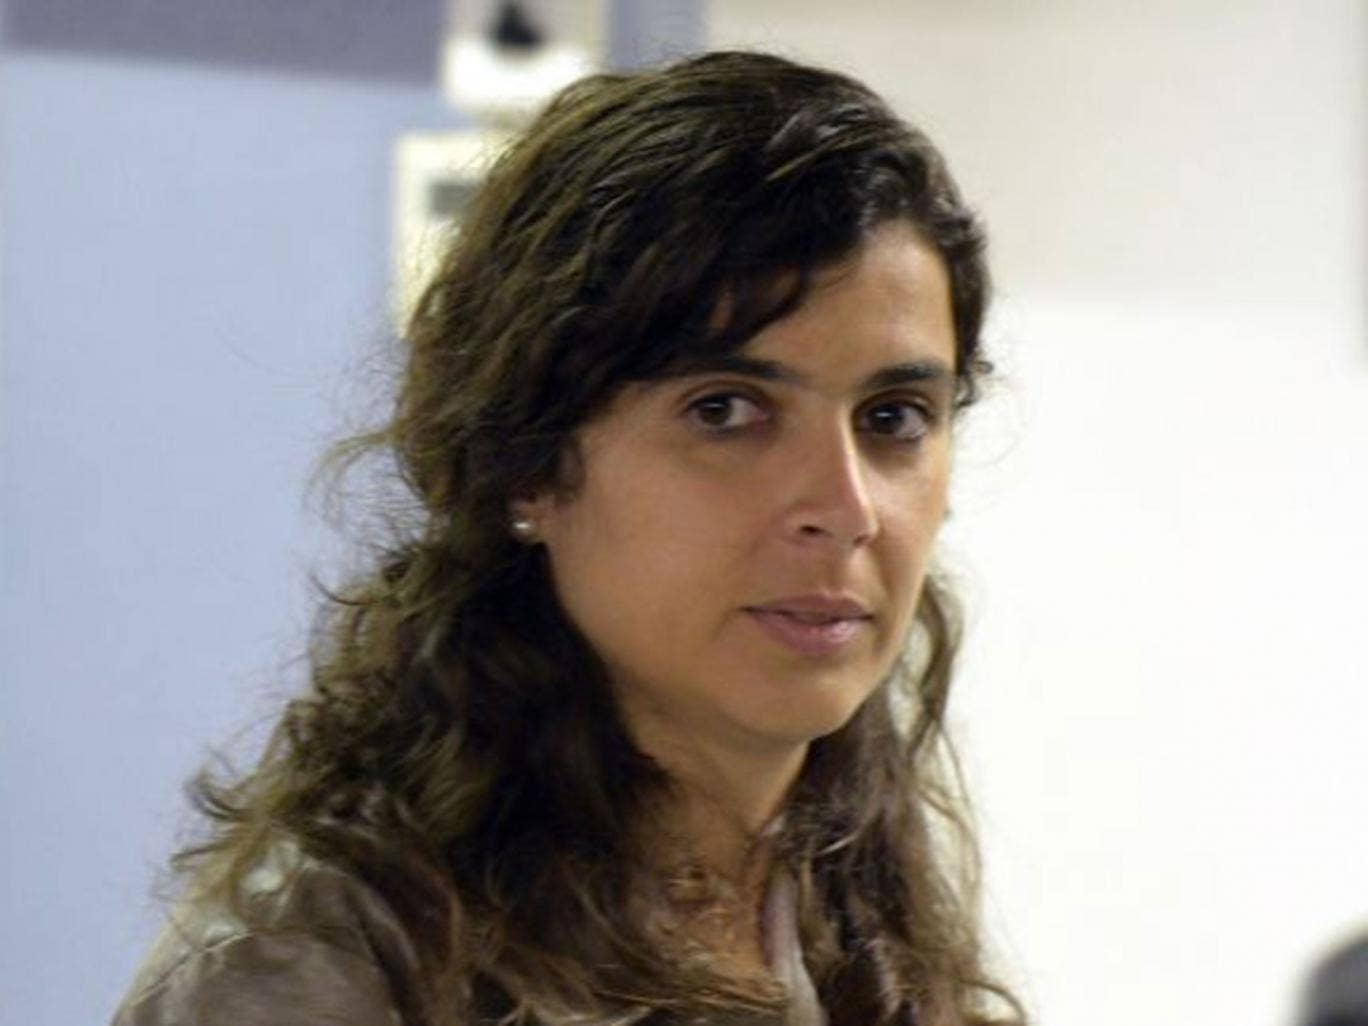 Helena Costa said she was hired by Clermont Foot to attract publicity but would have no real authority